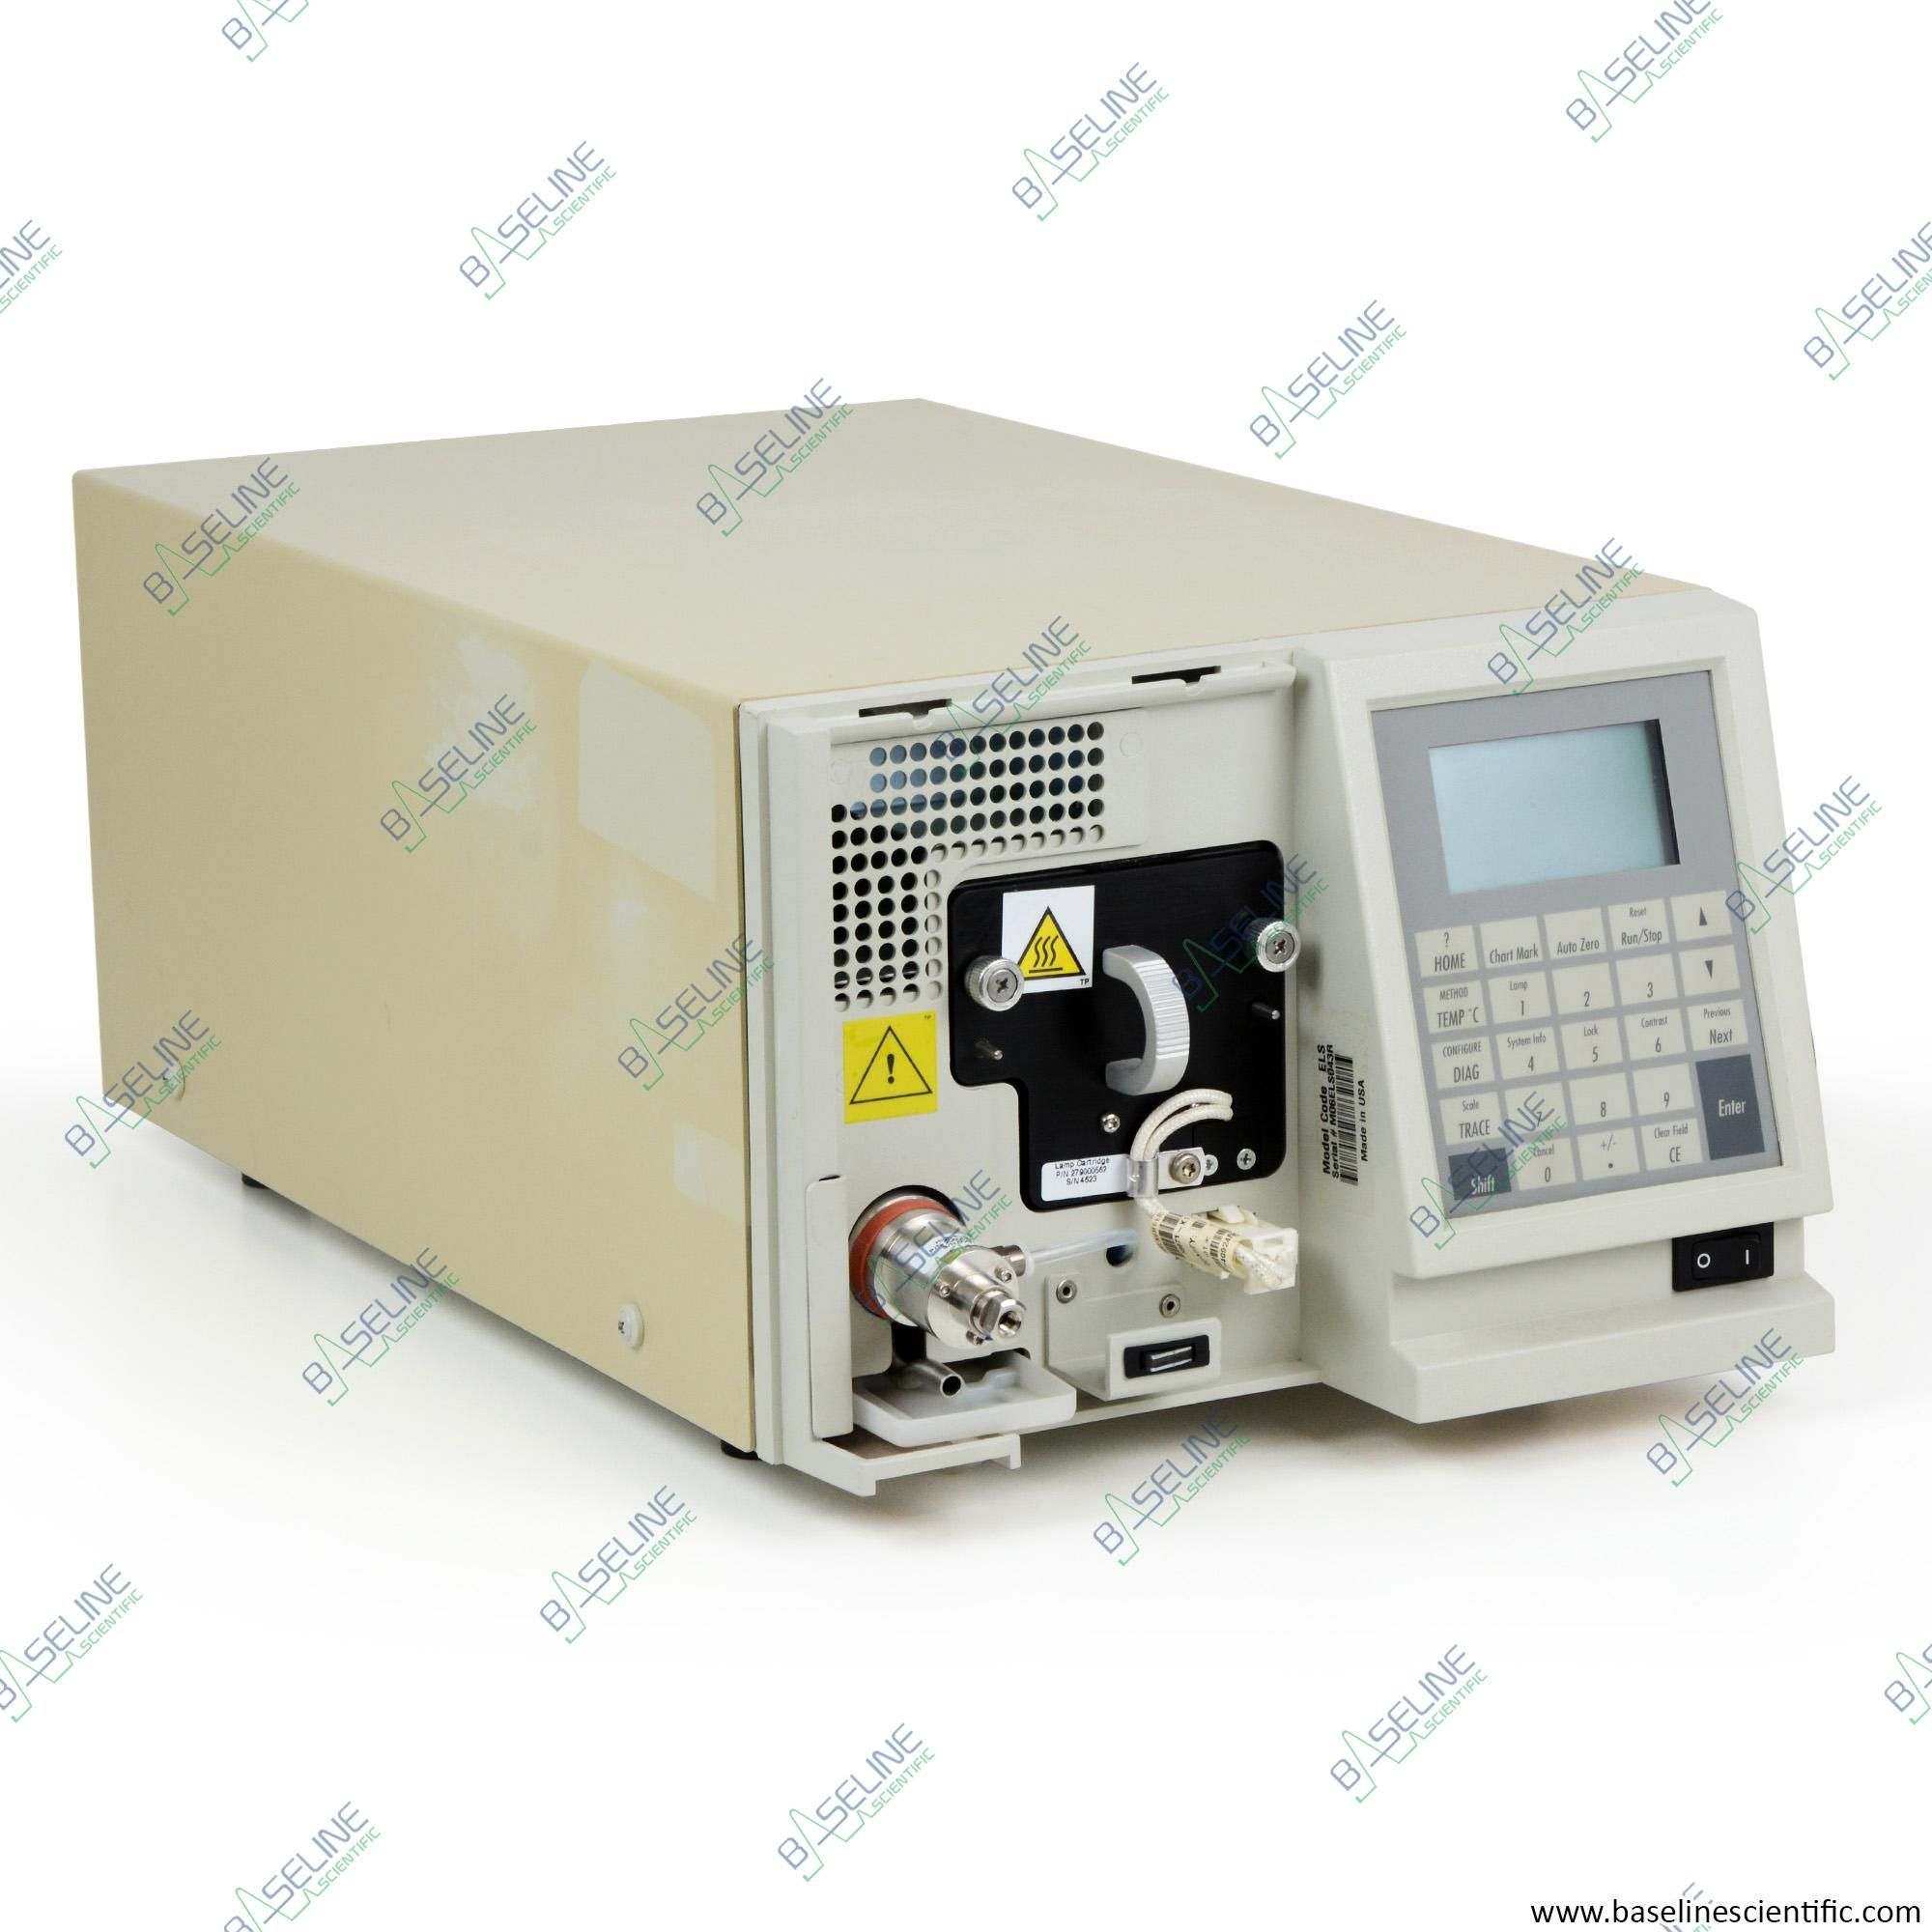 Refurbished Waters 2424 Evaporative Light Scattering Detector with One Year WARRANTY